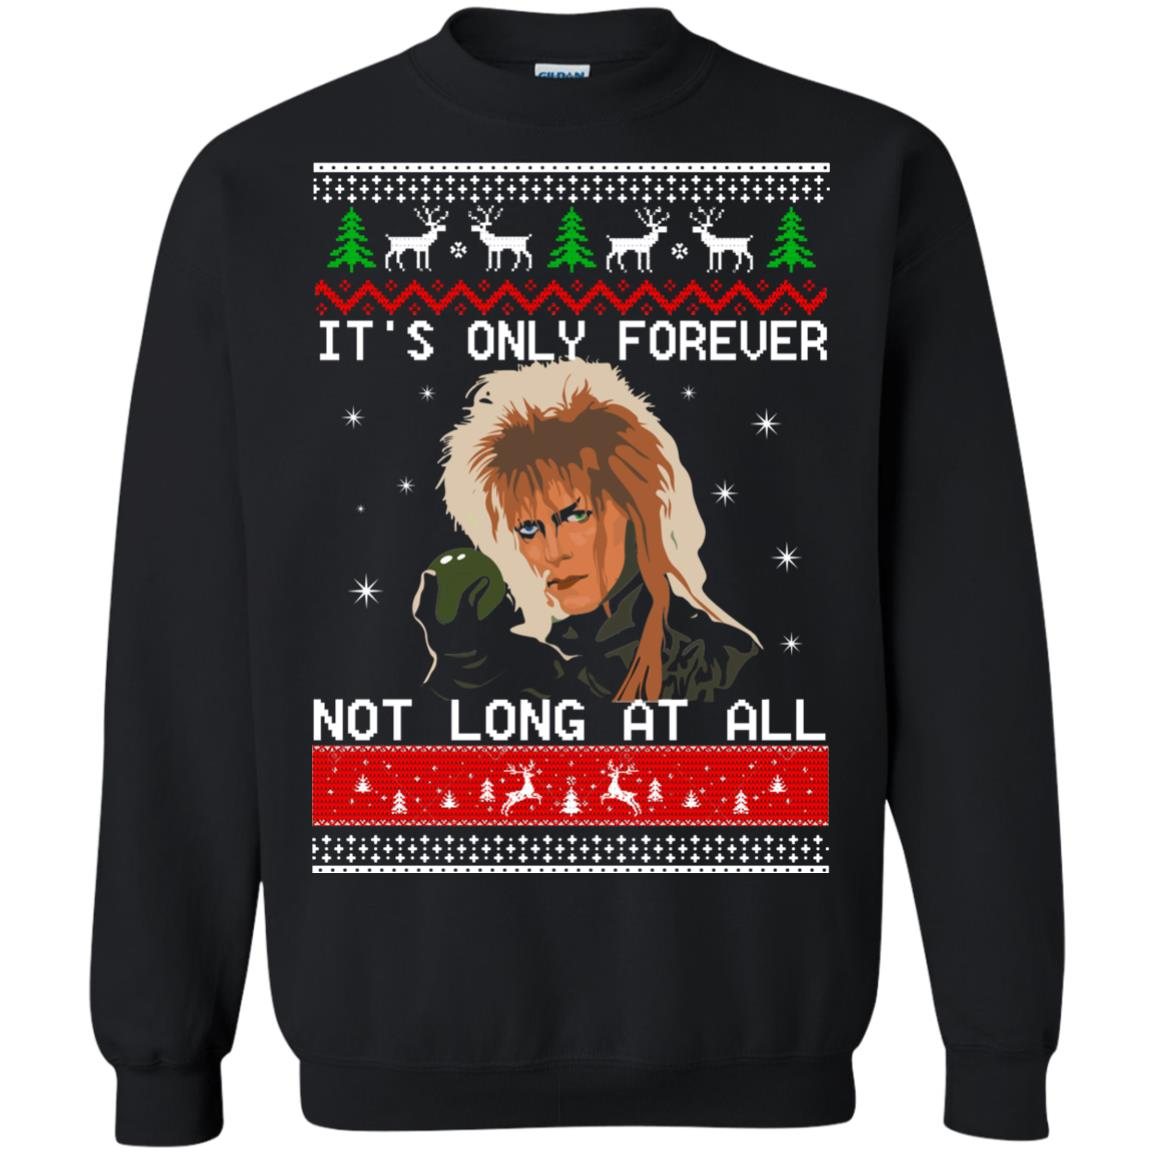 david bowie its only forever not long at all christmas sweater shirt image 2027 510x510 - David Bowie Christmas